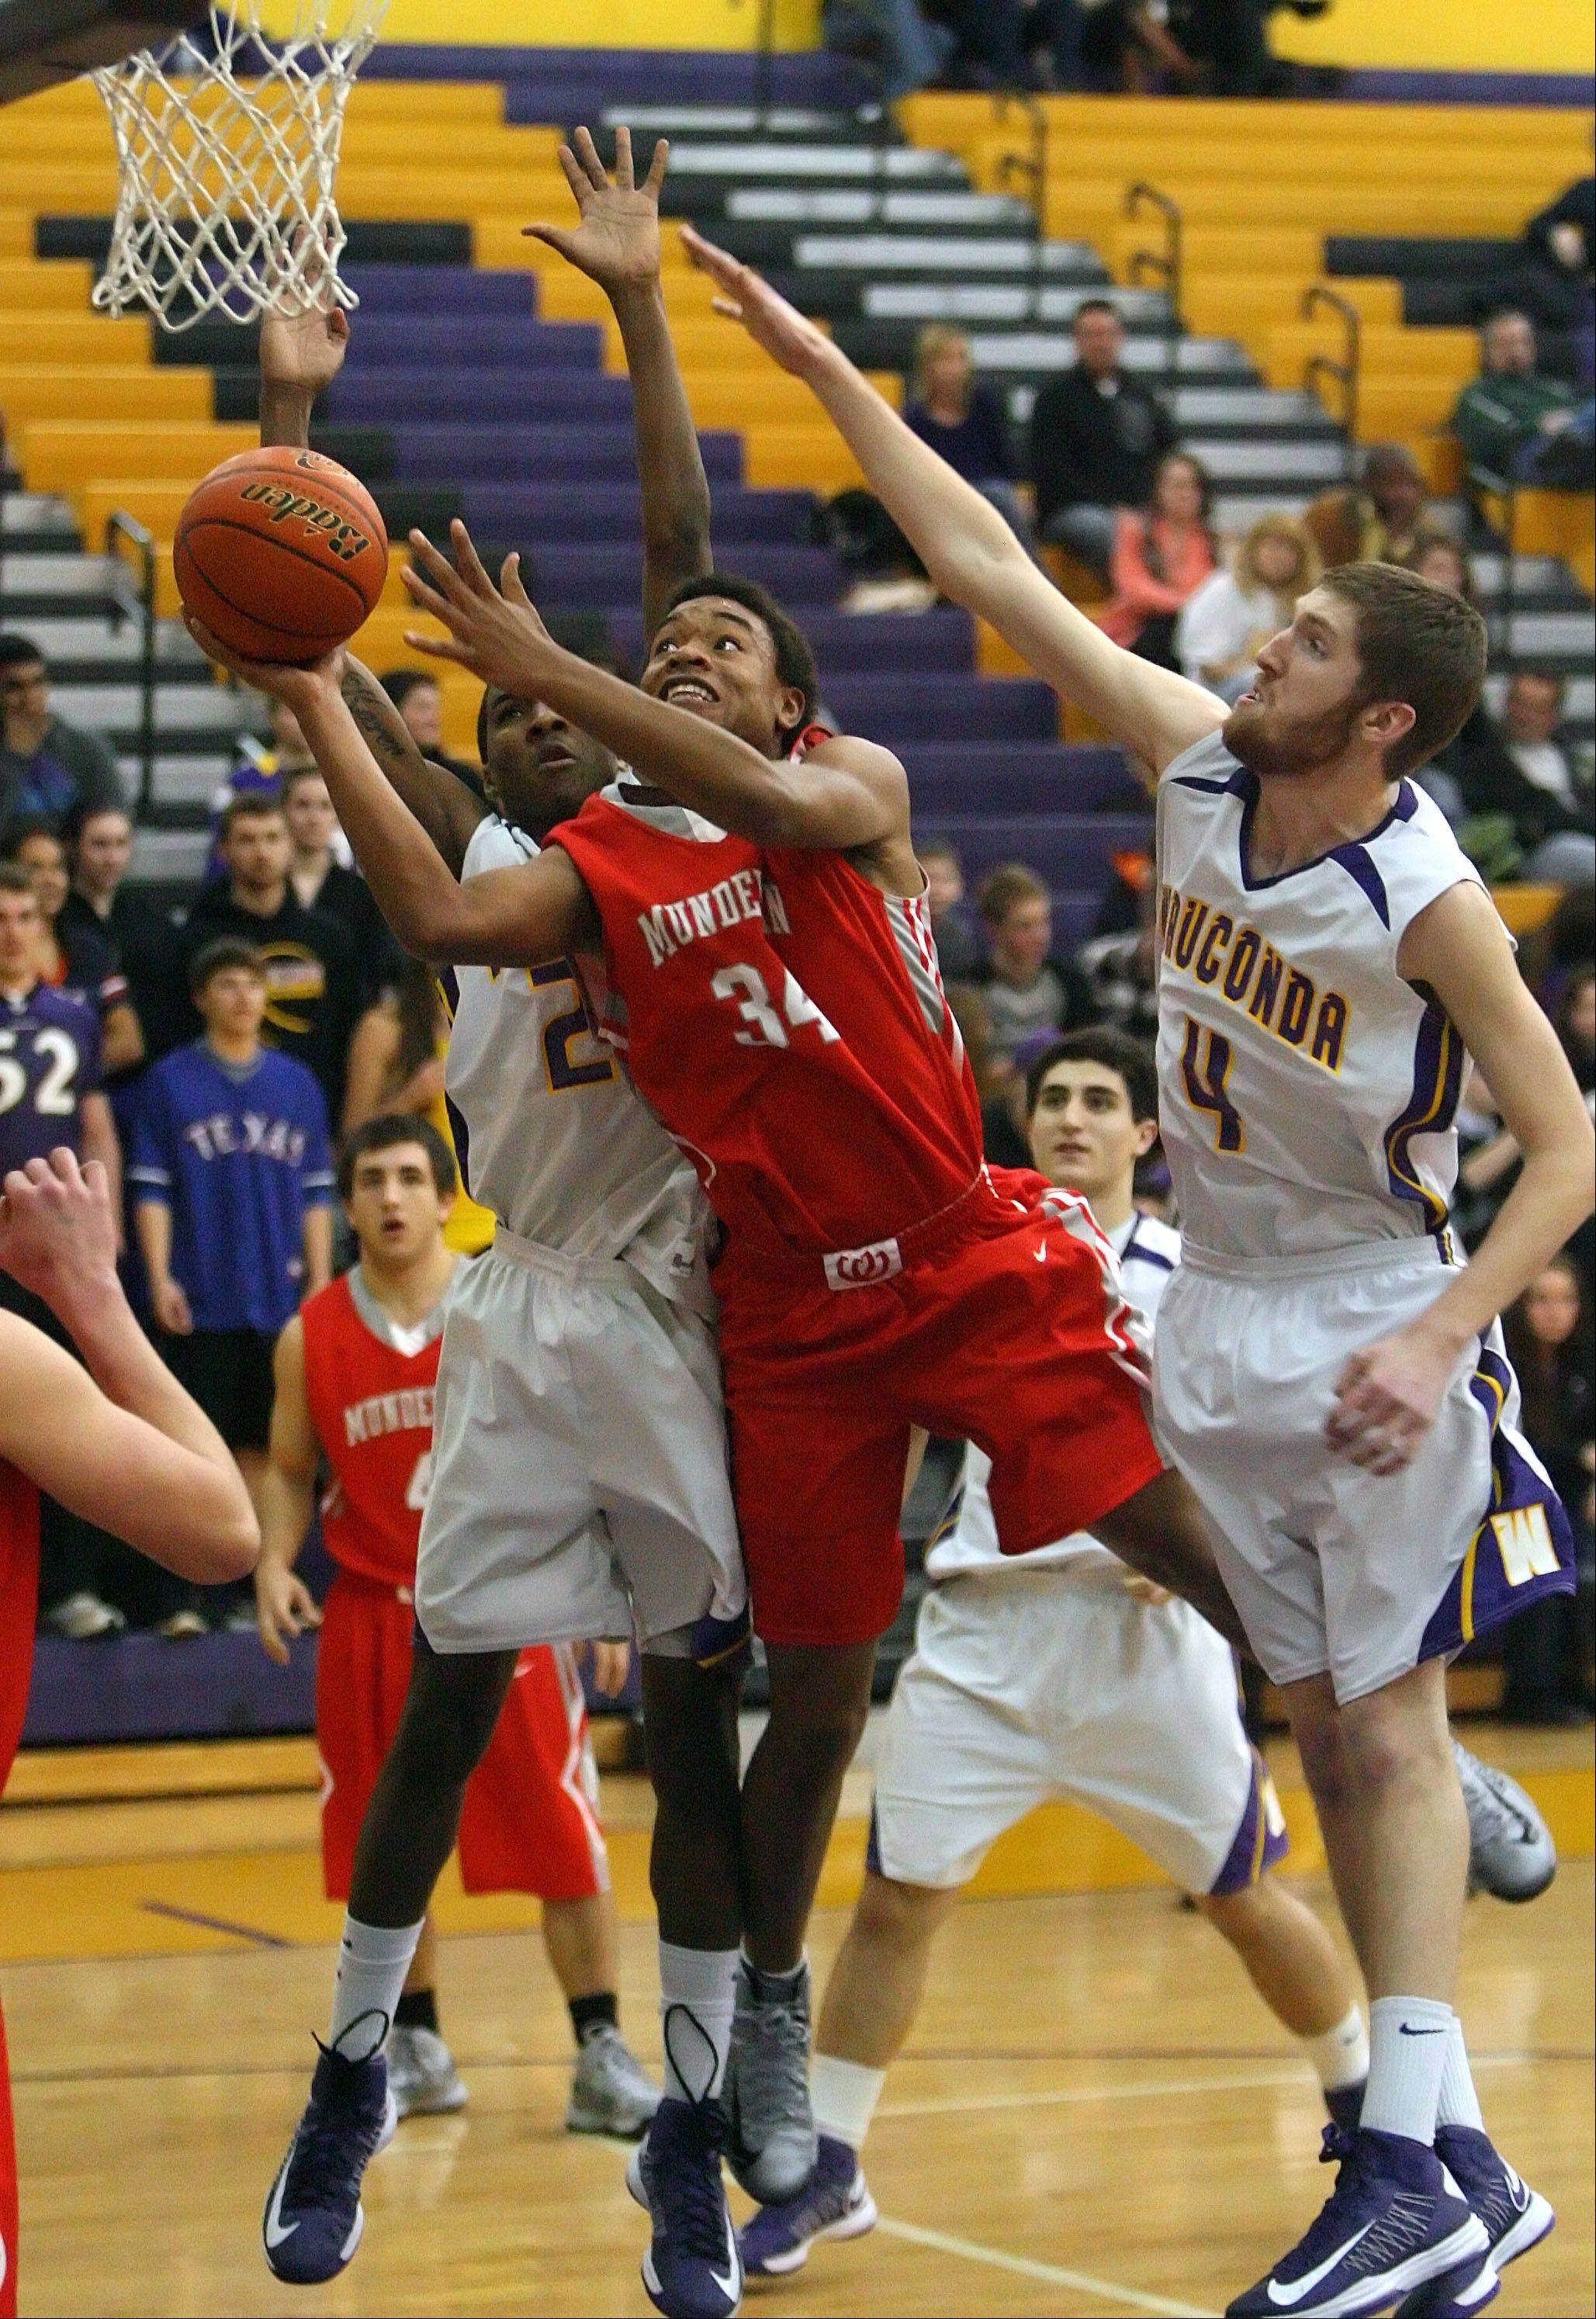 Mundelein's Cliff Dunigan drives past Wauconda's Devon King, left, and Ricky Sidlowski on Wednesday night at Wauconda.